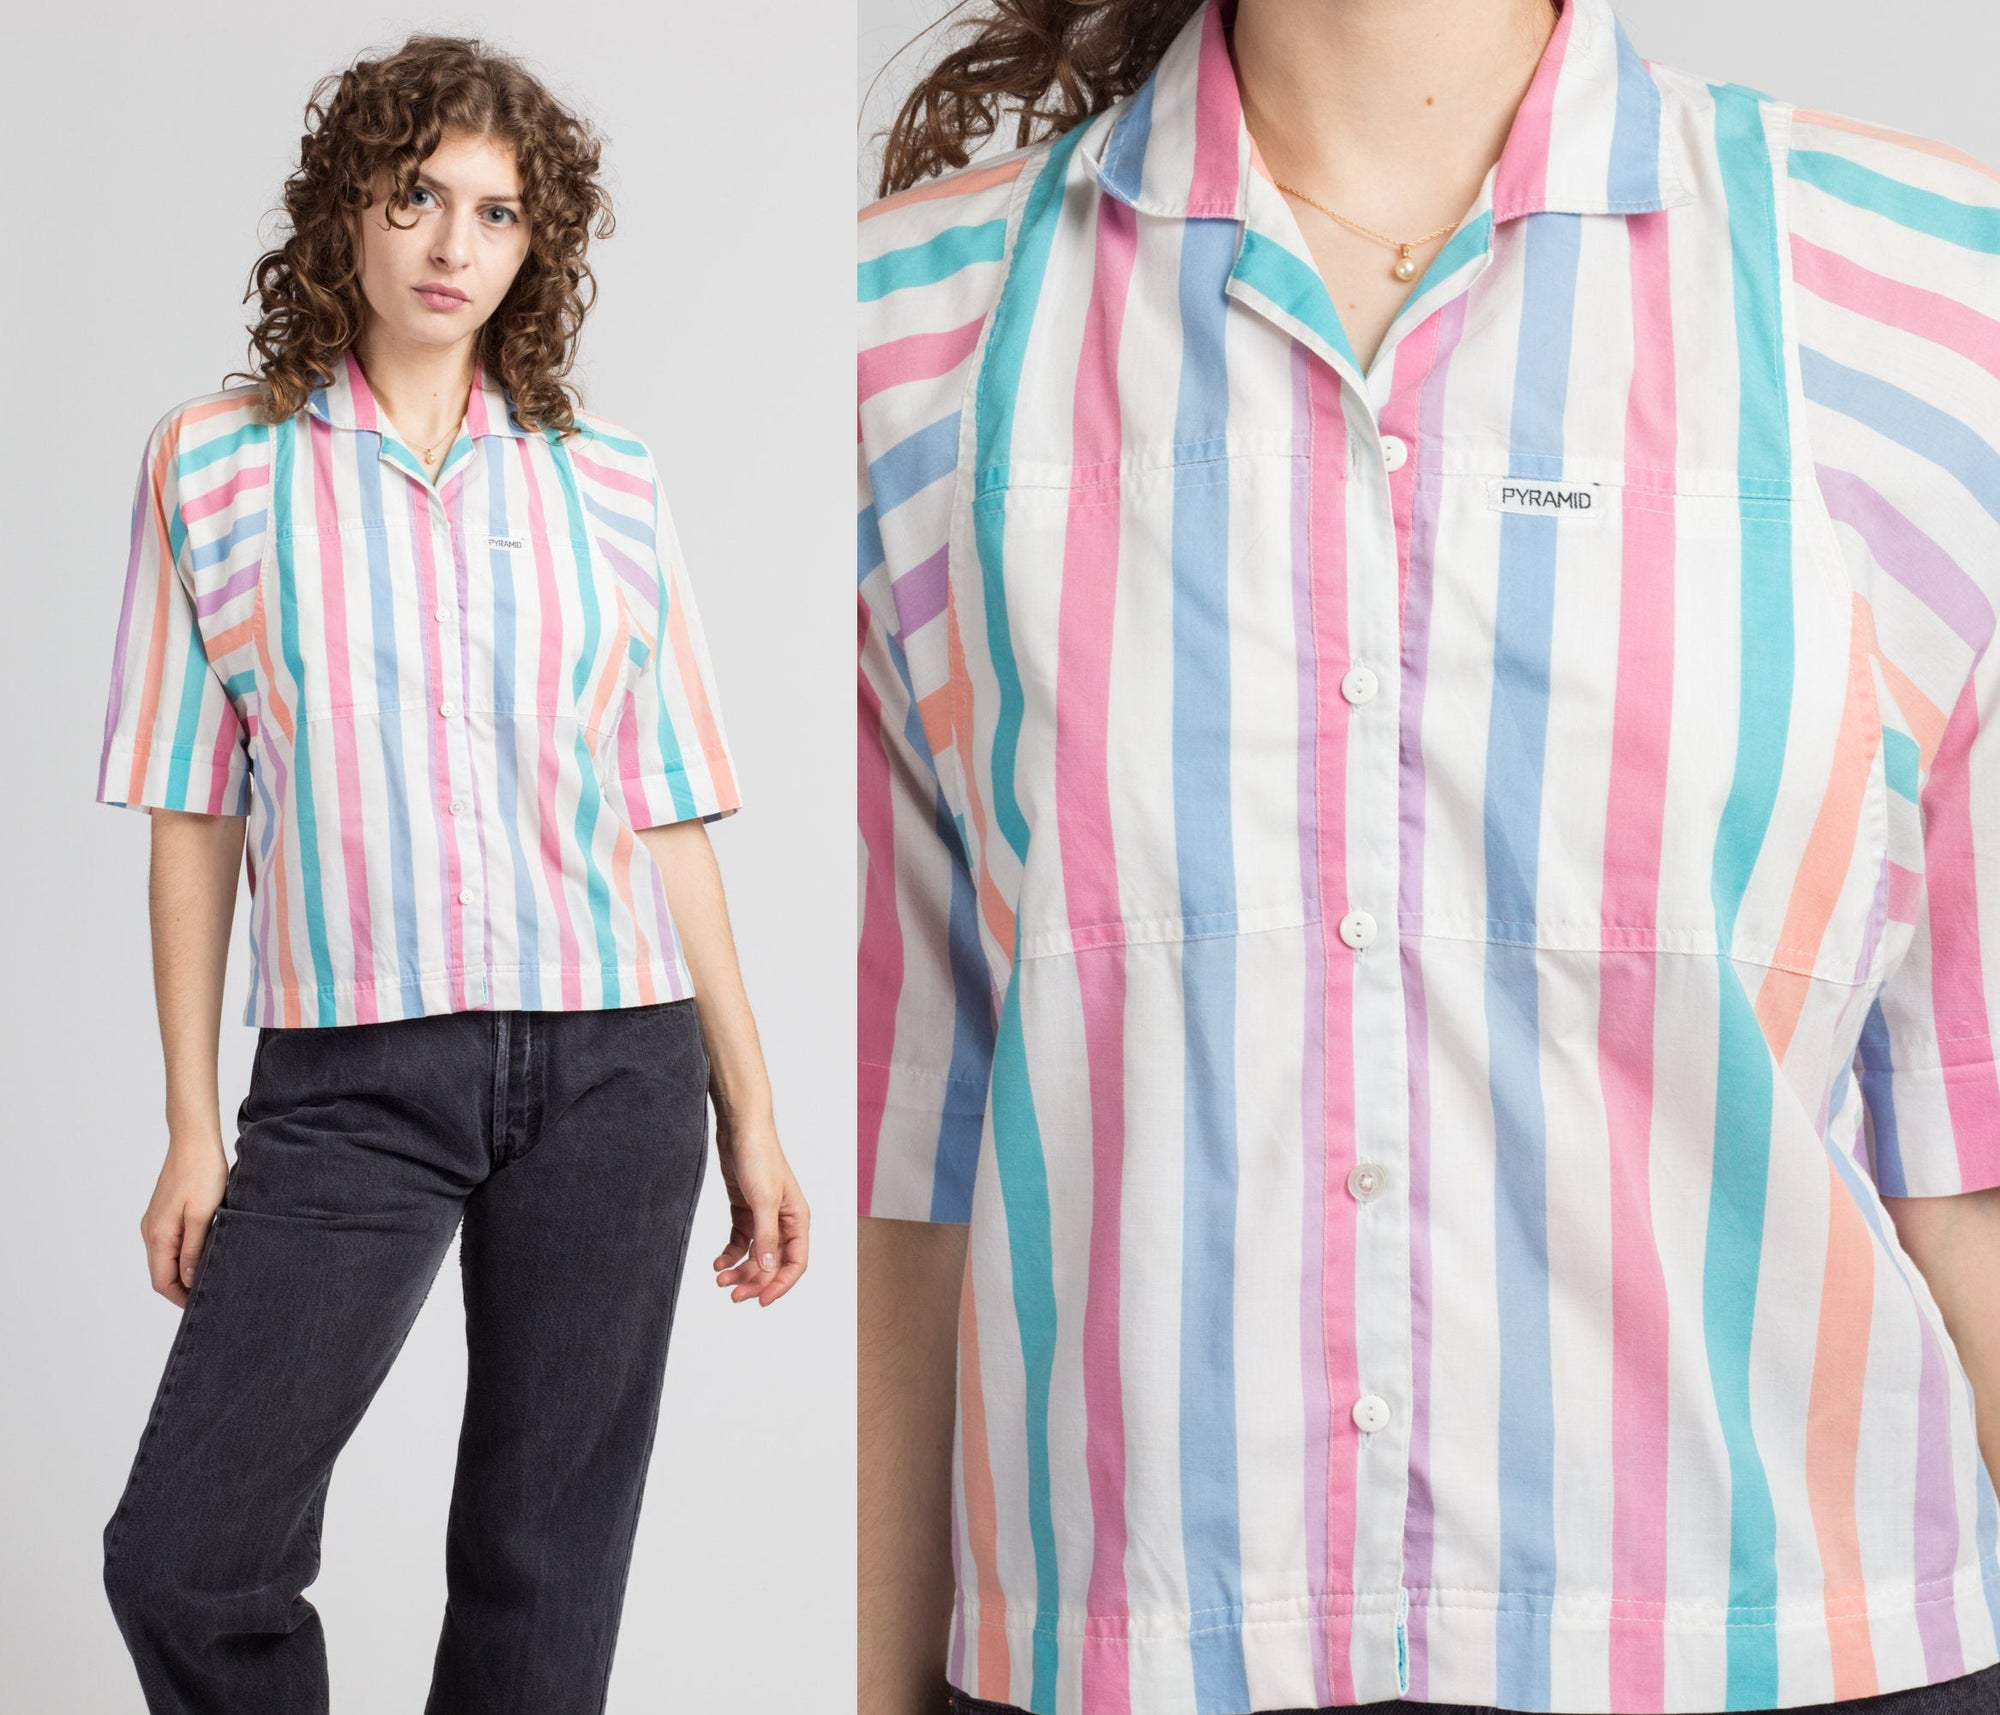 80s Pyramid Pastel Striped Button Up Top - Medium